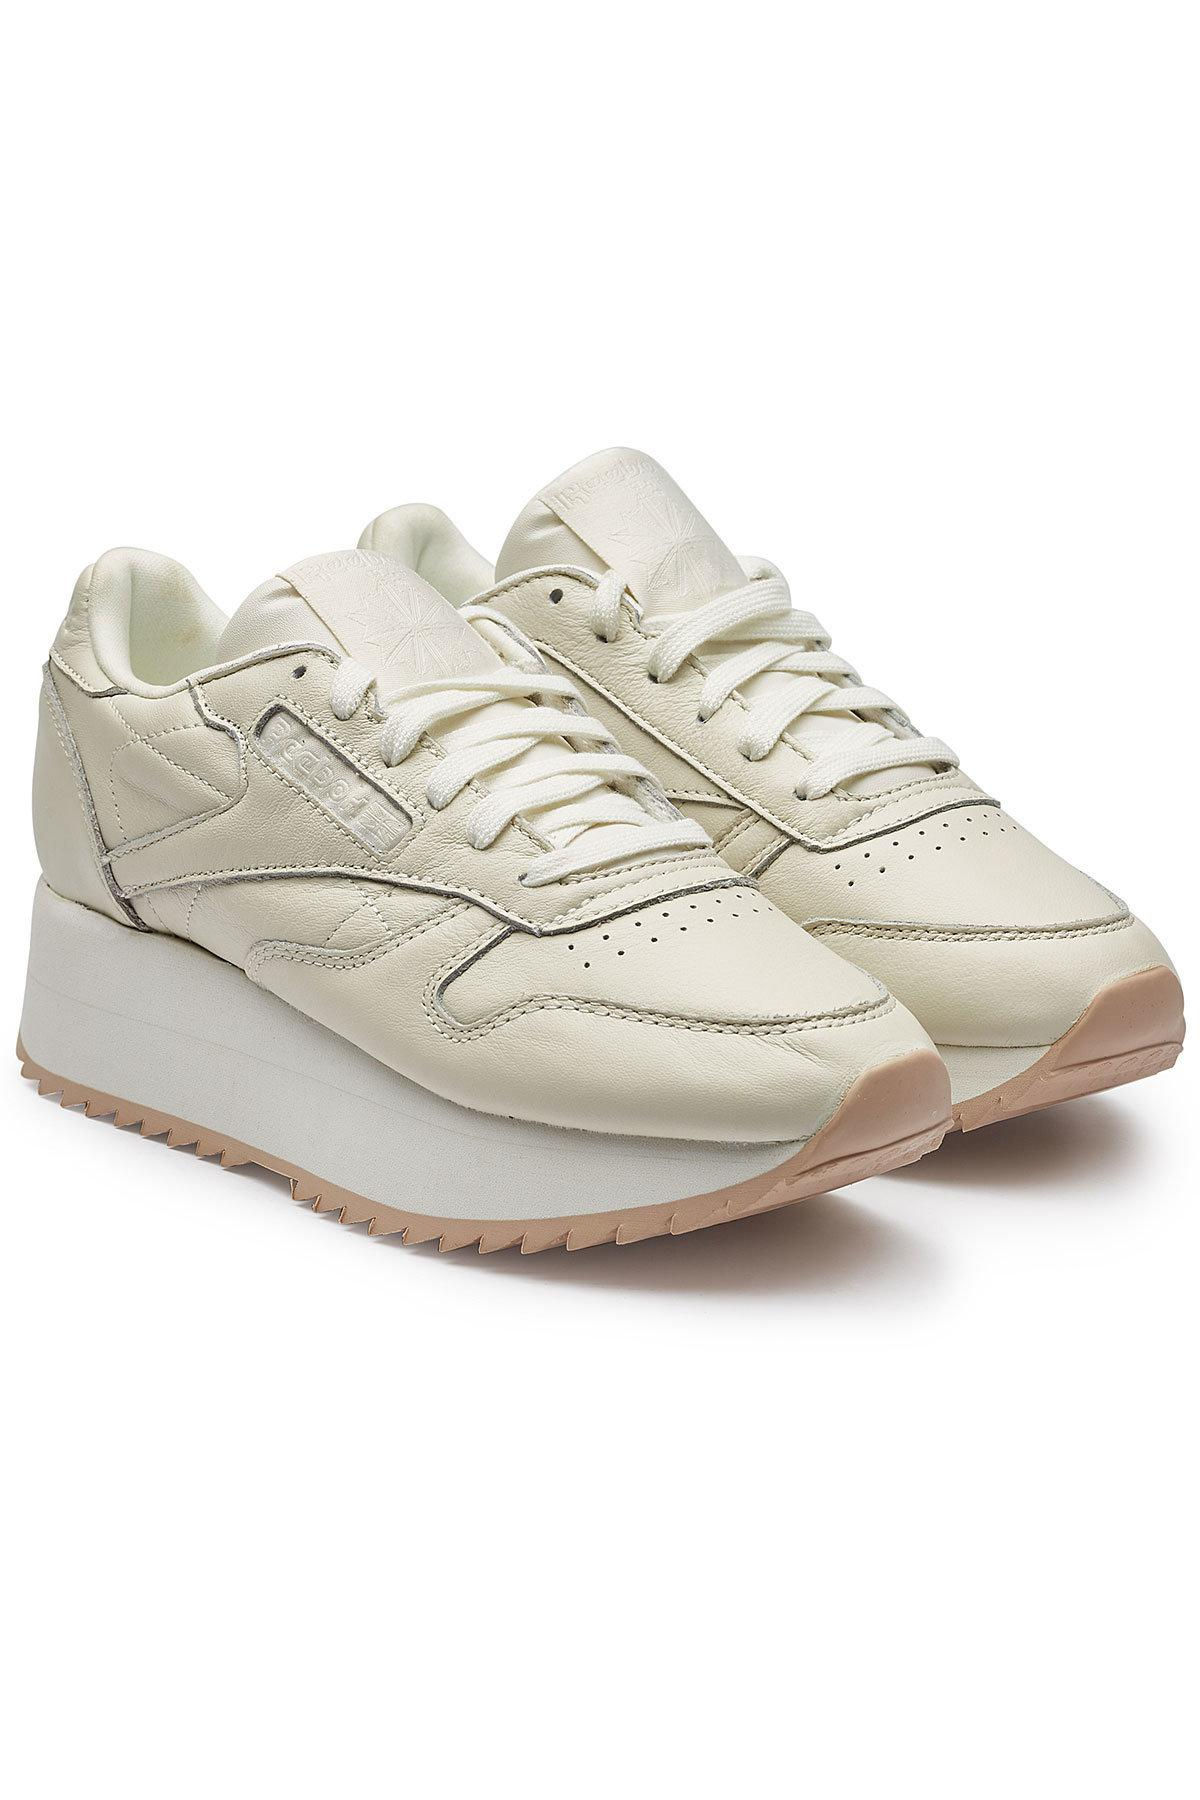 973c02d98c2613 Reebok Classic Leather Double Platform Sneakers - Lyst